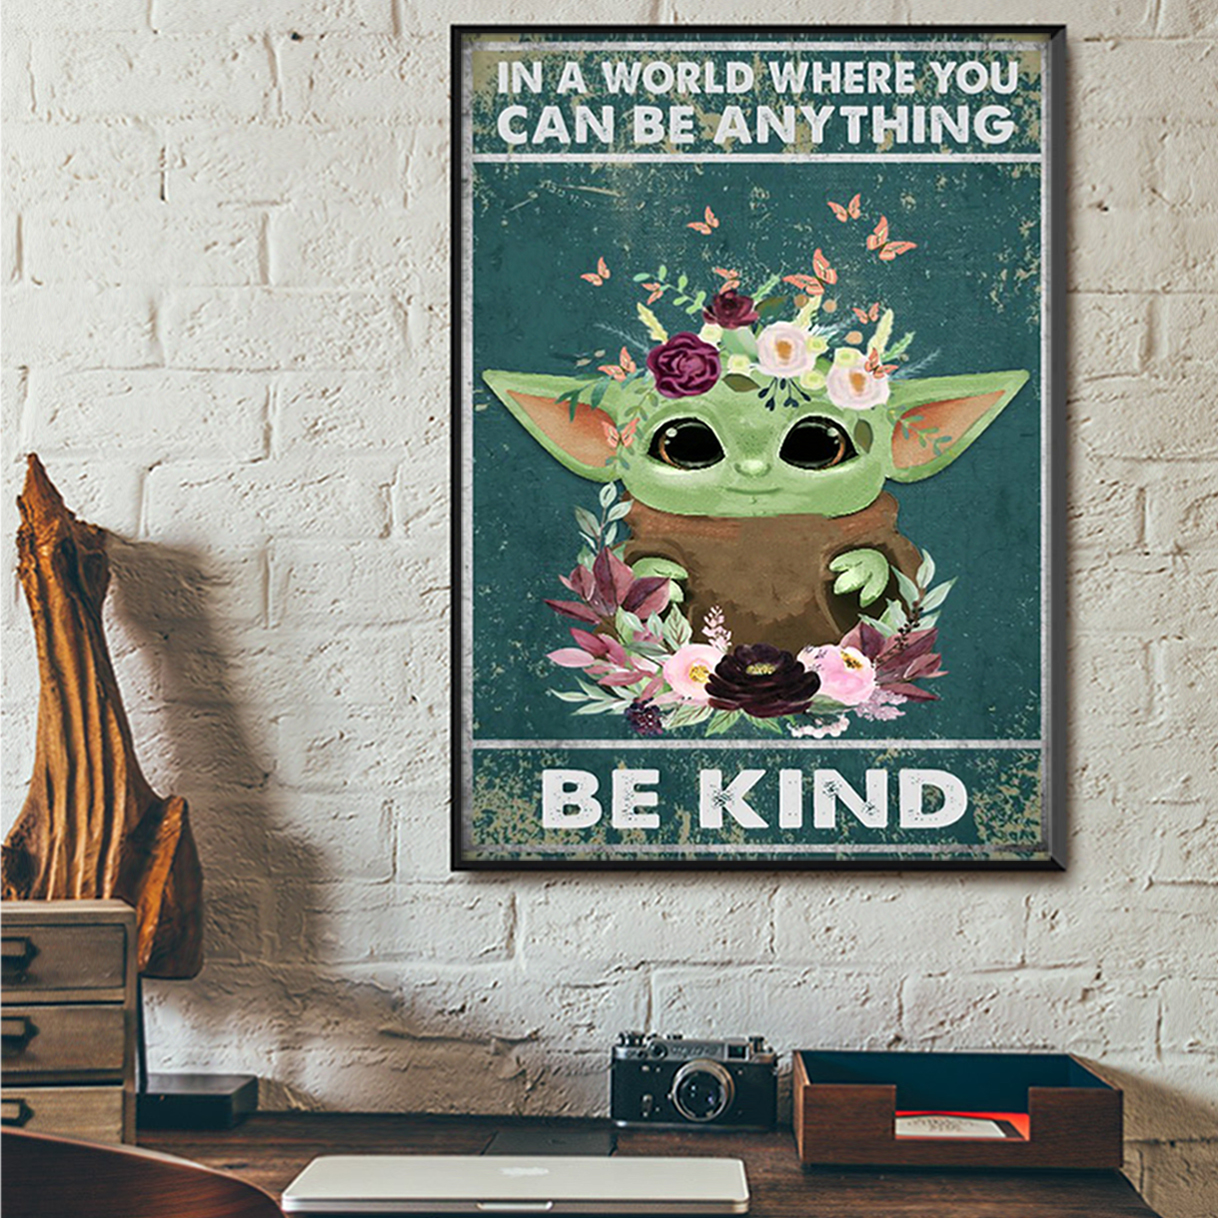 Baby yod in a world where you can be anything be kind poster A2